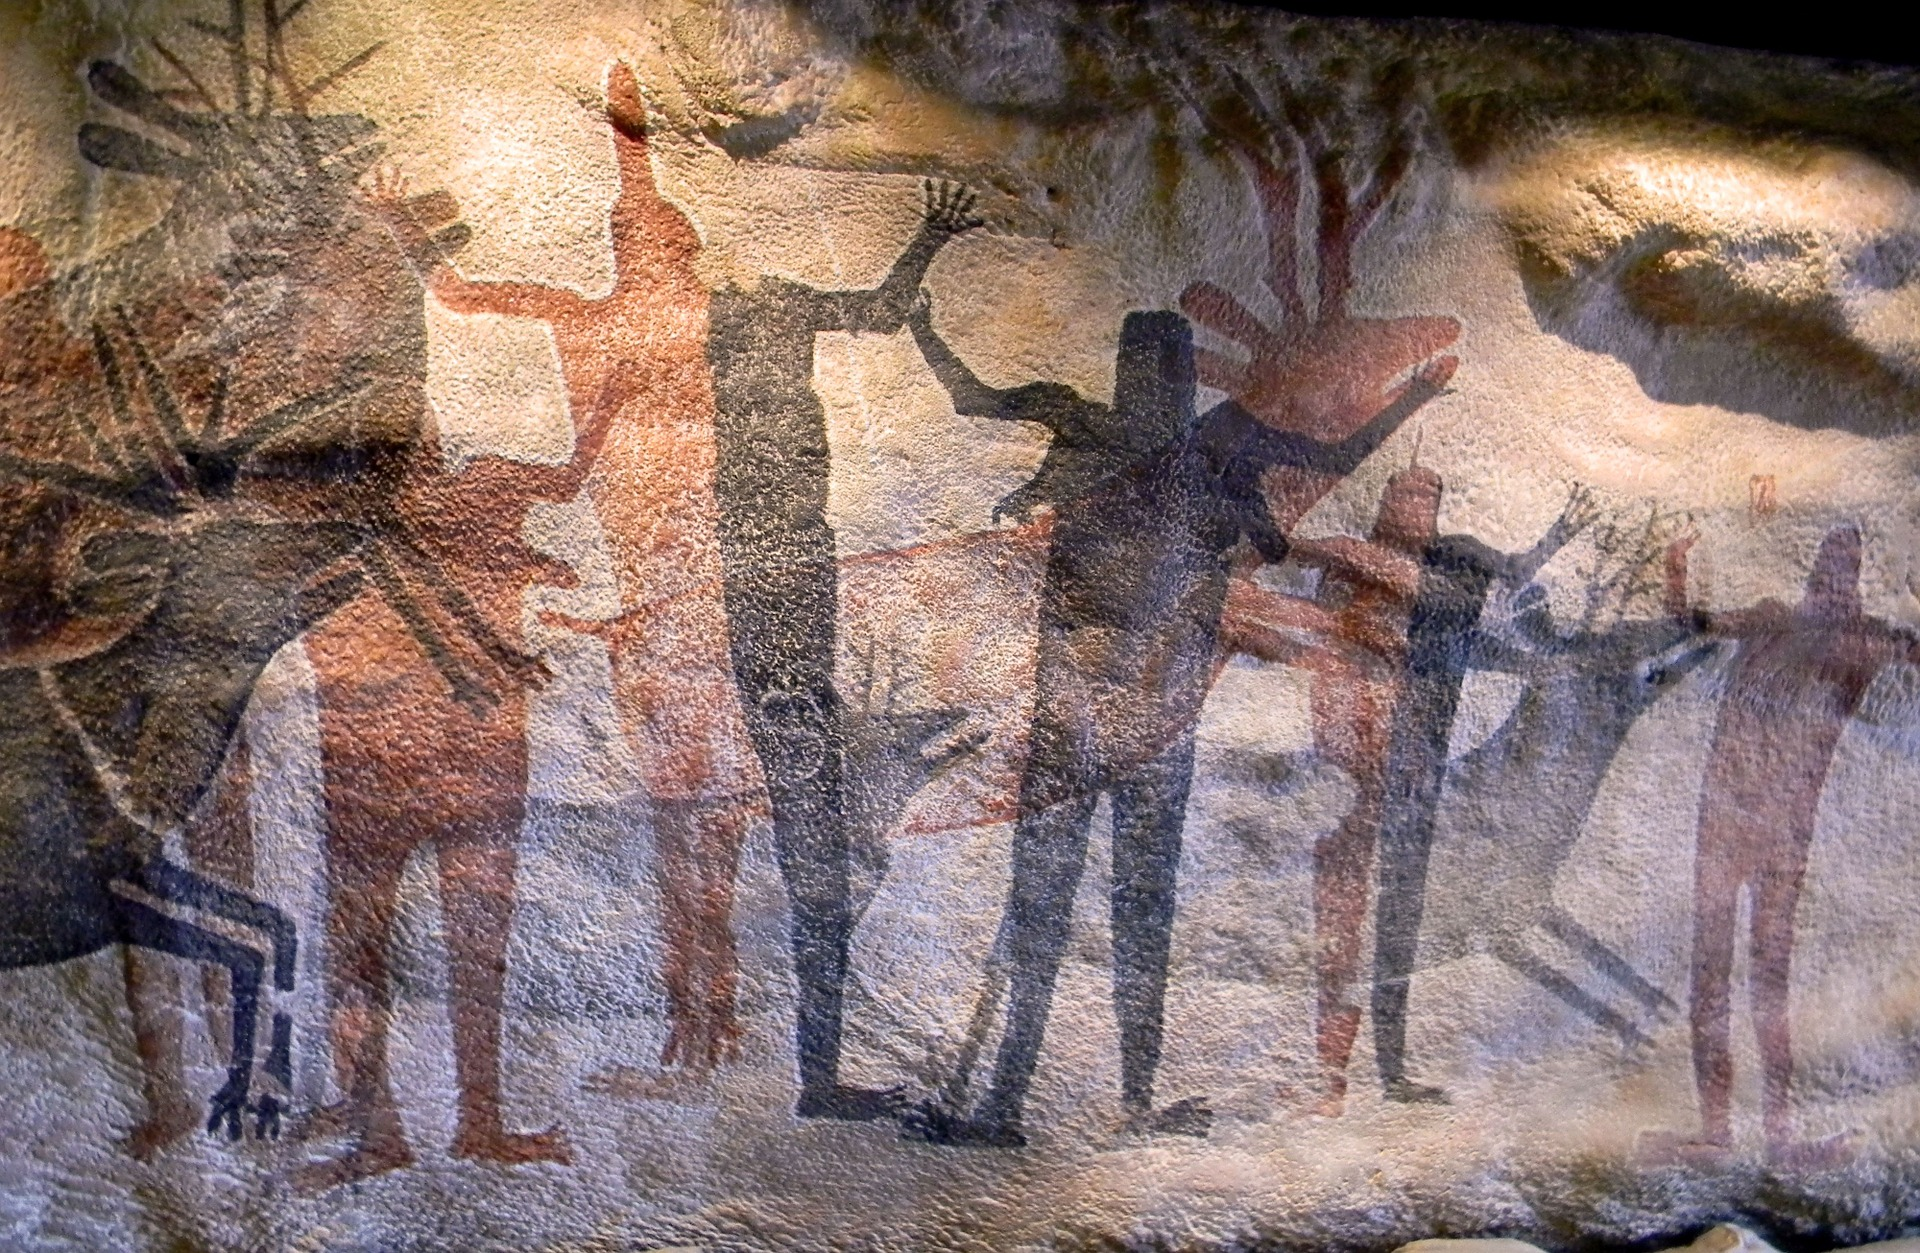 cave-painting-936619_1920